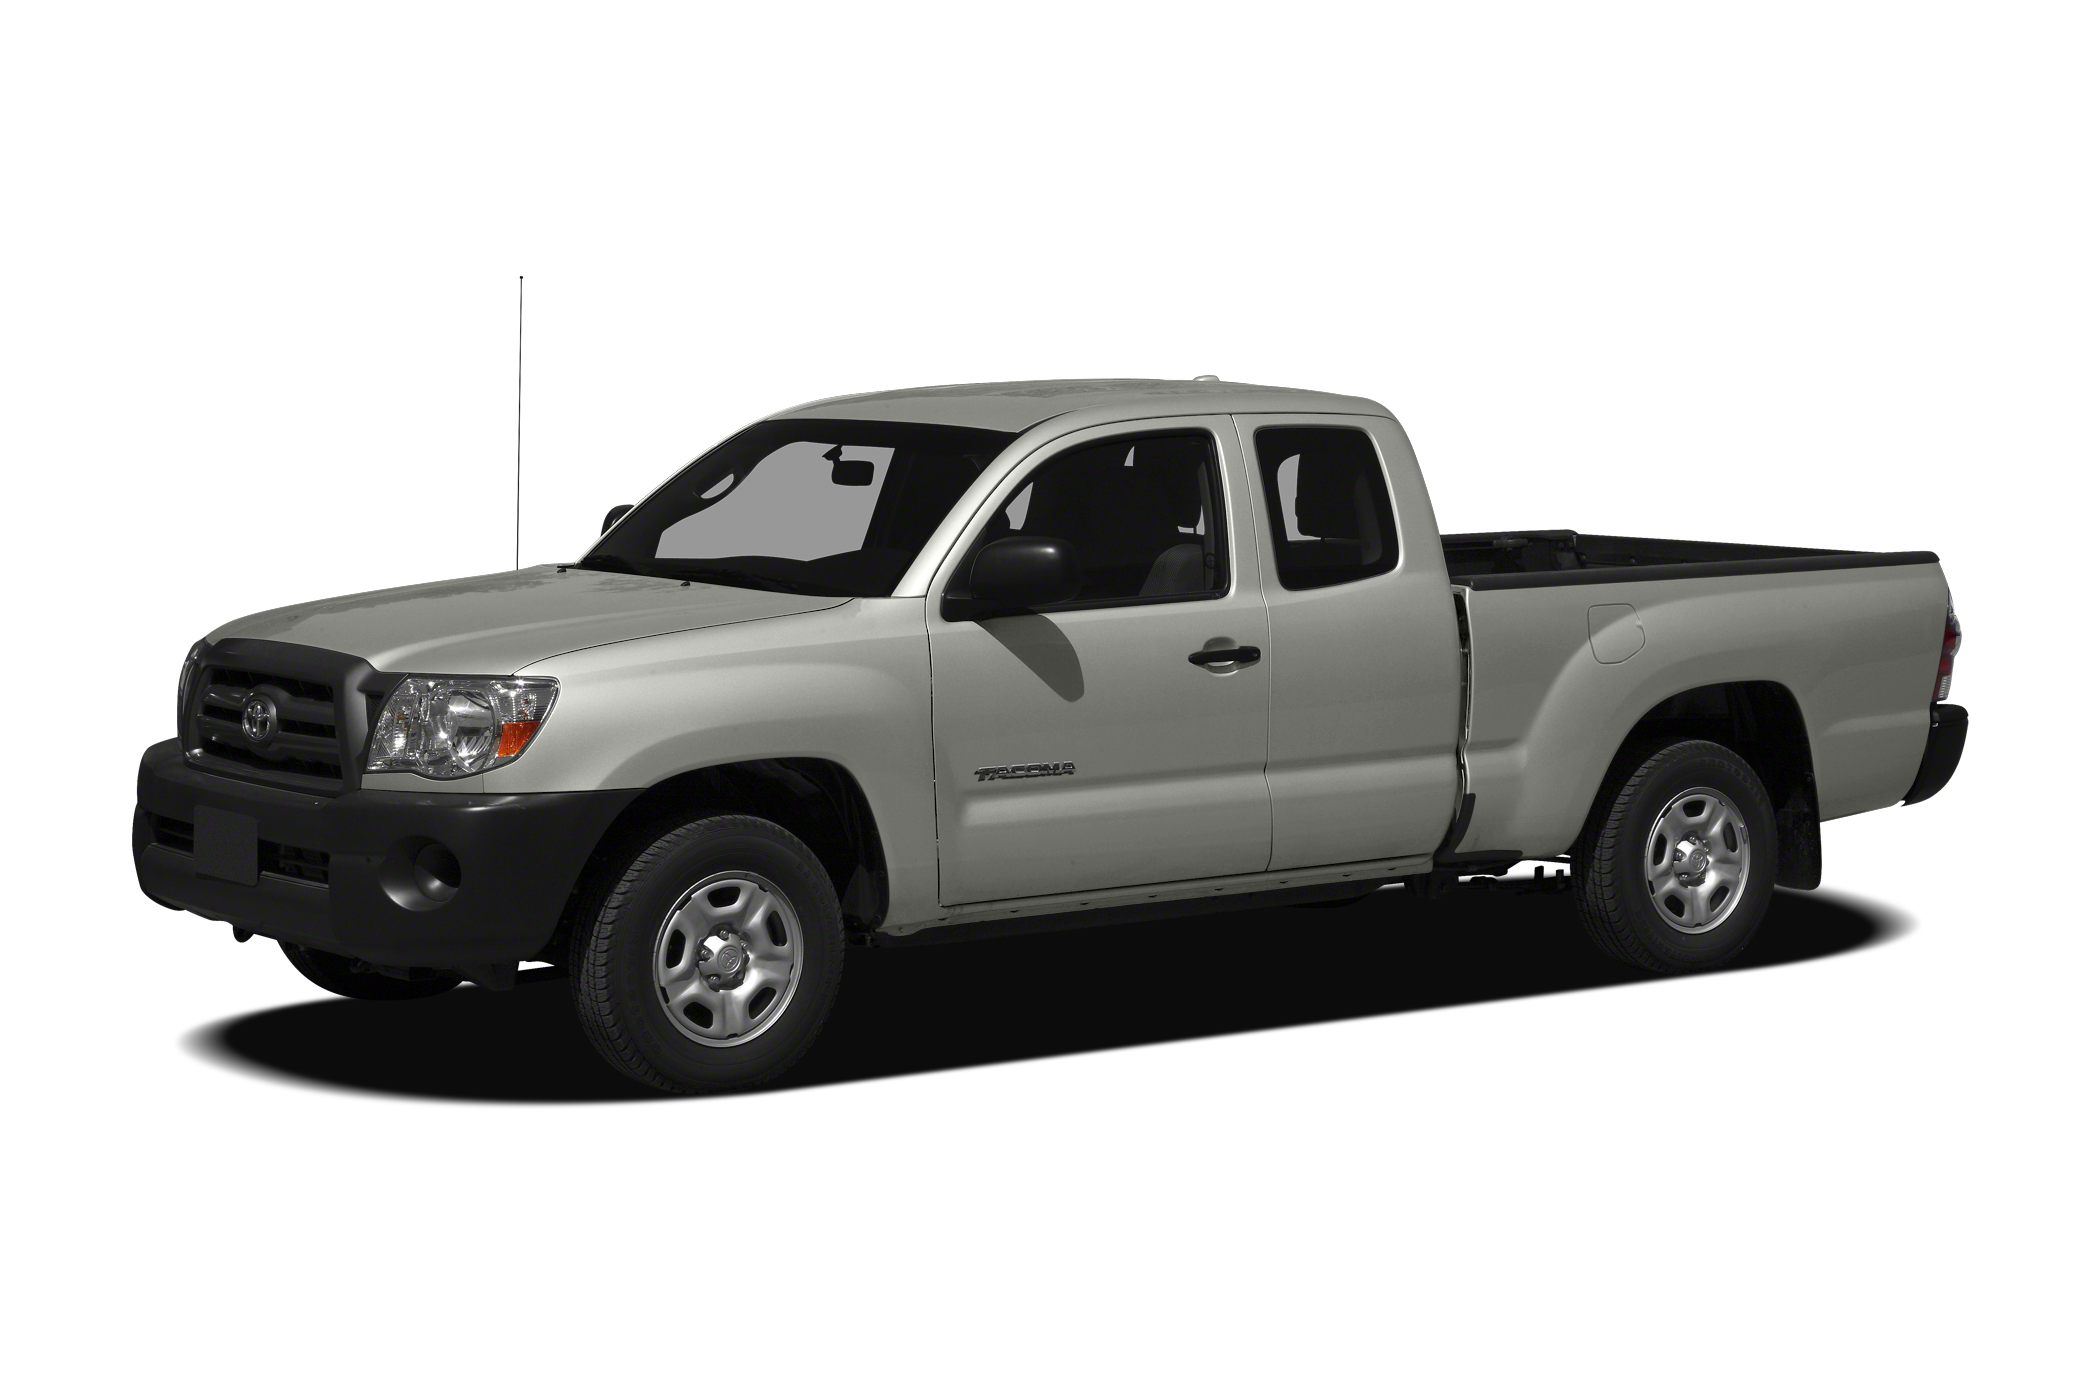 2011 Toyota Tacoma Base FUEL EFFICIENT 20 MPG Hwy16 MPG City CARFAX 1-Owner LOW MILES - 38695